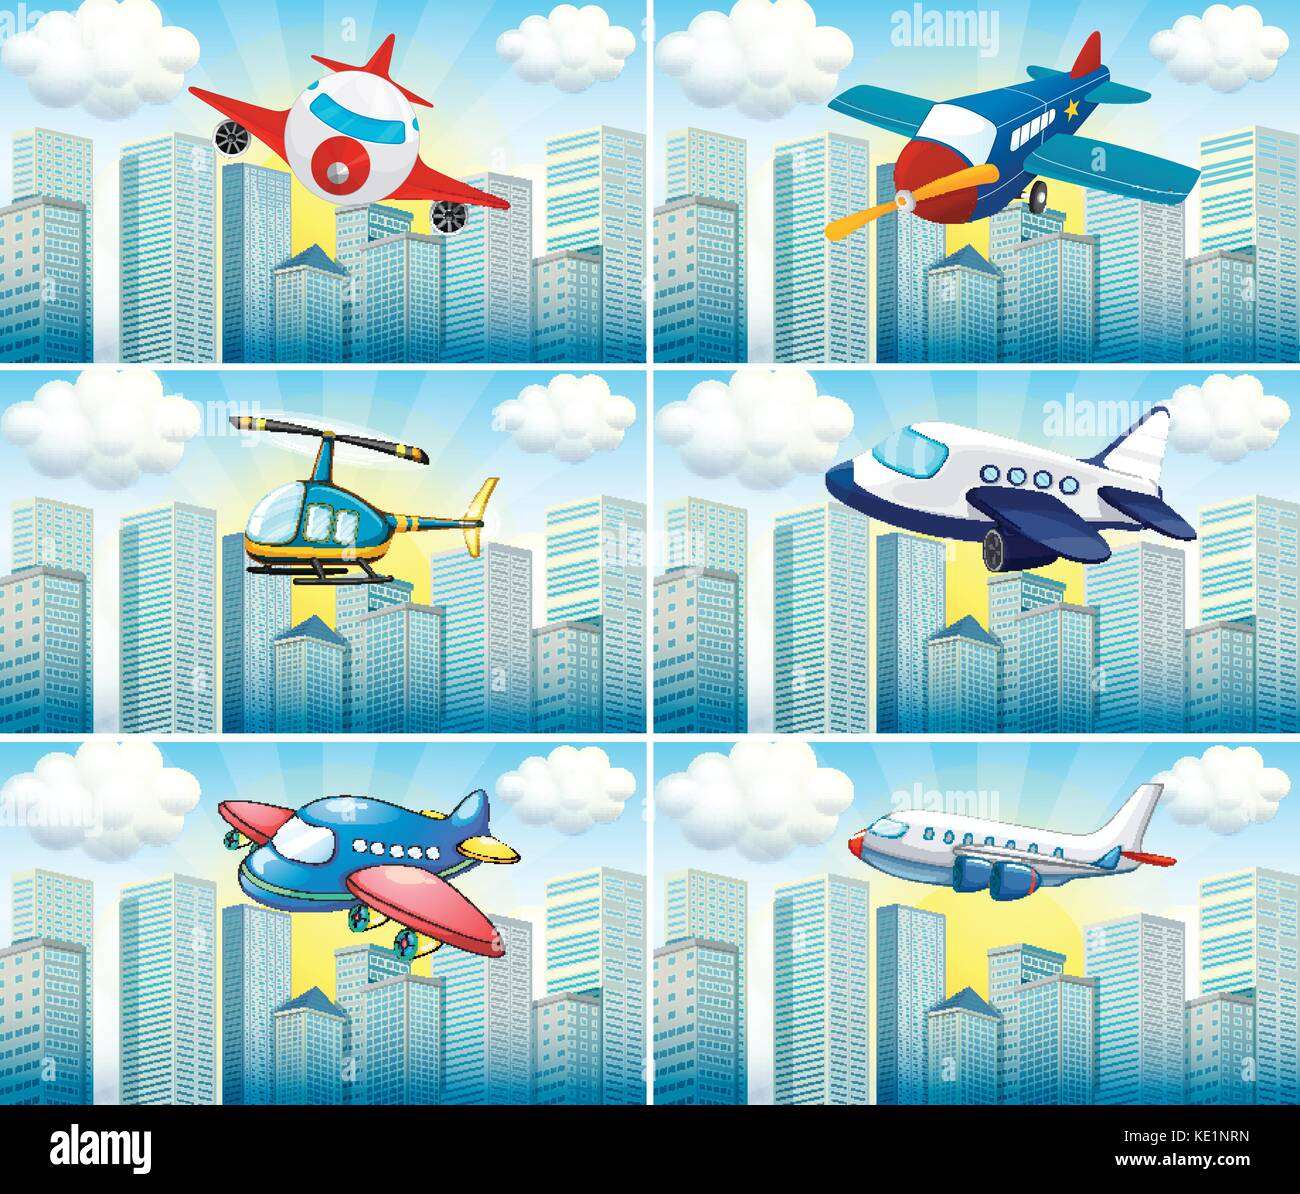 Helicopter and airplanes flying in the city illustration - Stock Vector